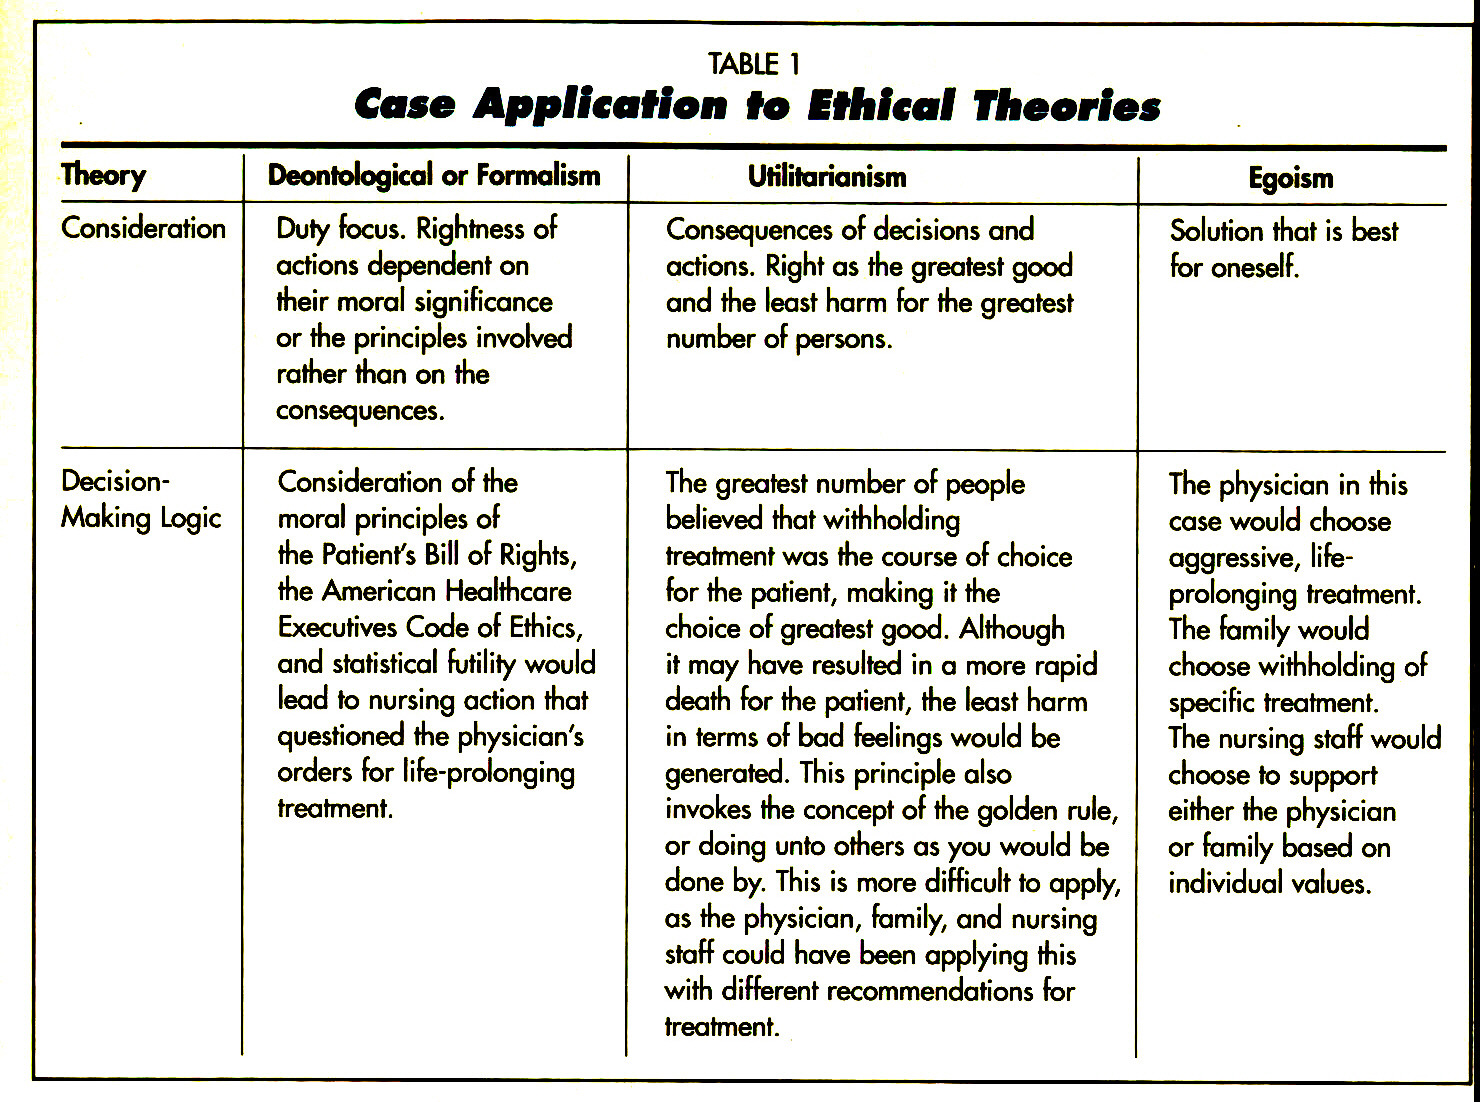 TABLE 1Case Application fe CtJtlcal Theories